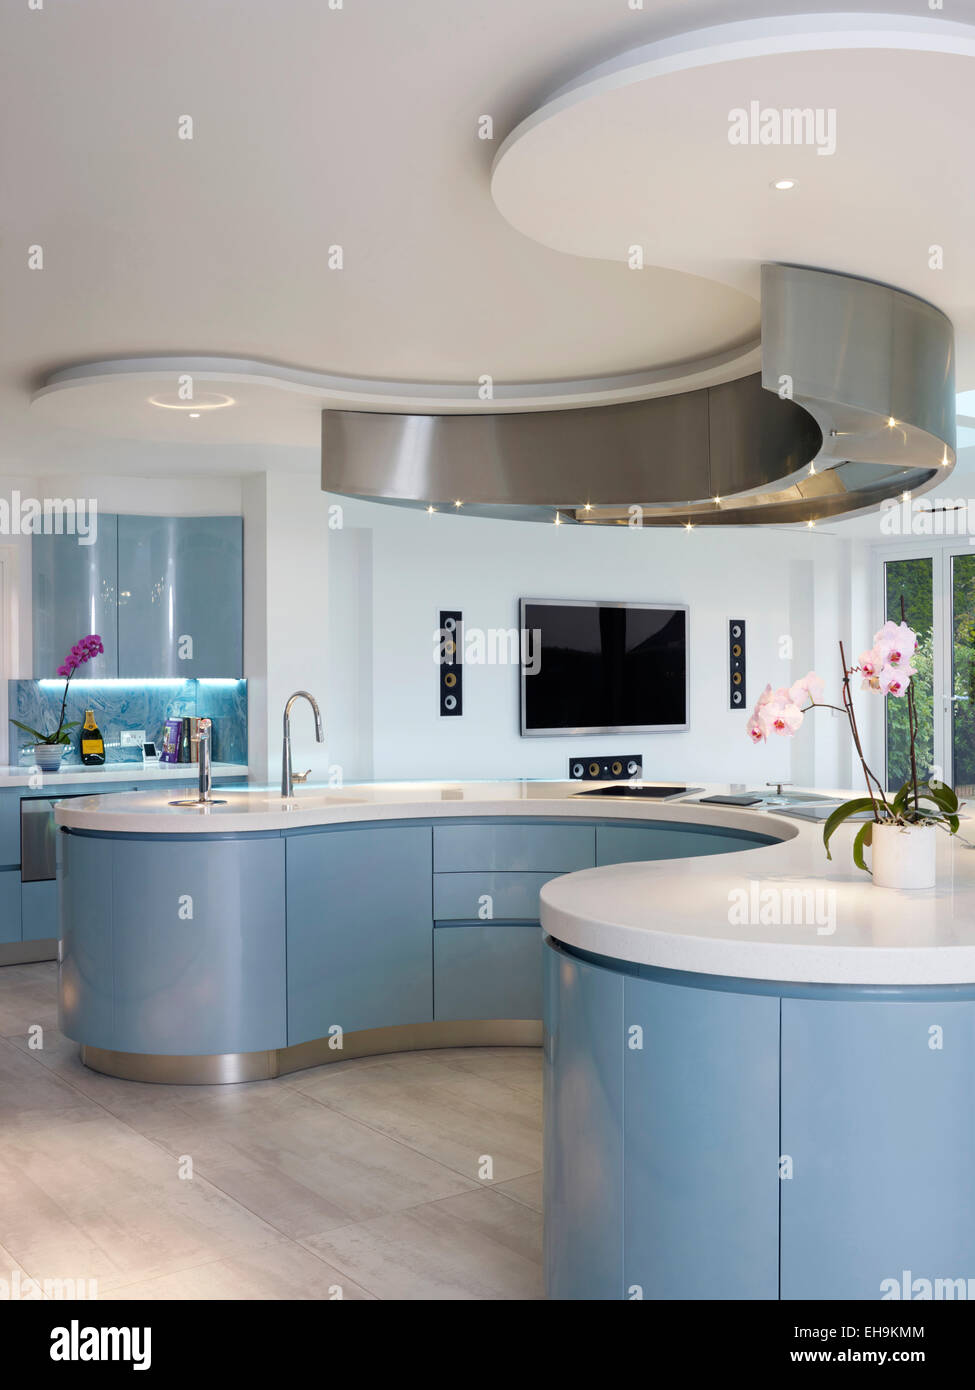 Blue And White Curved Breakfast Bar Island In Modern Kitchen